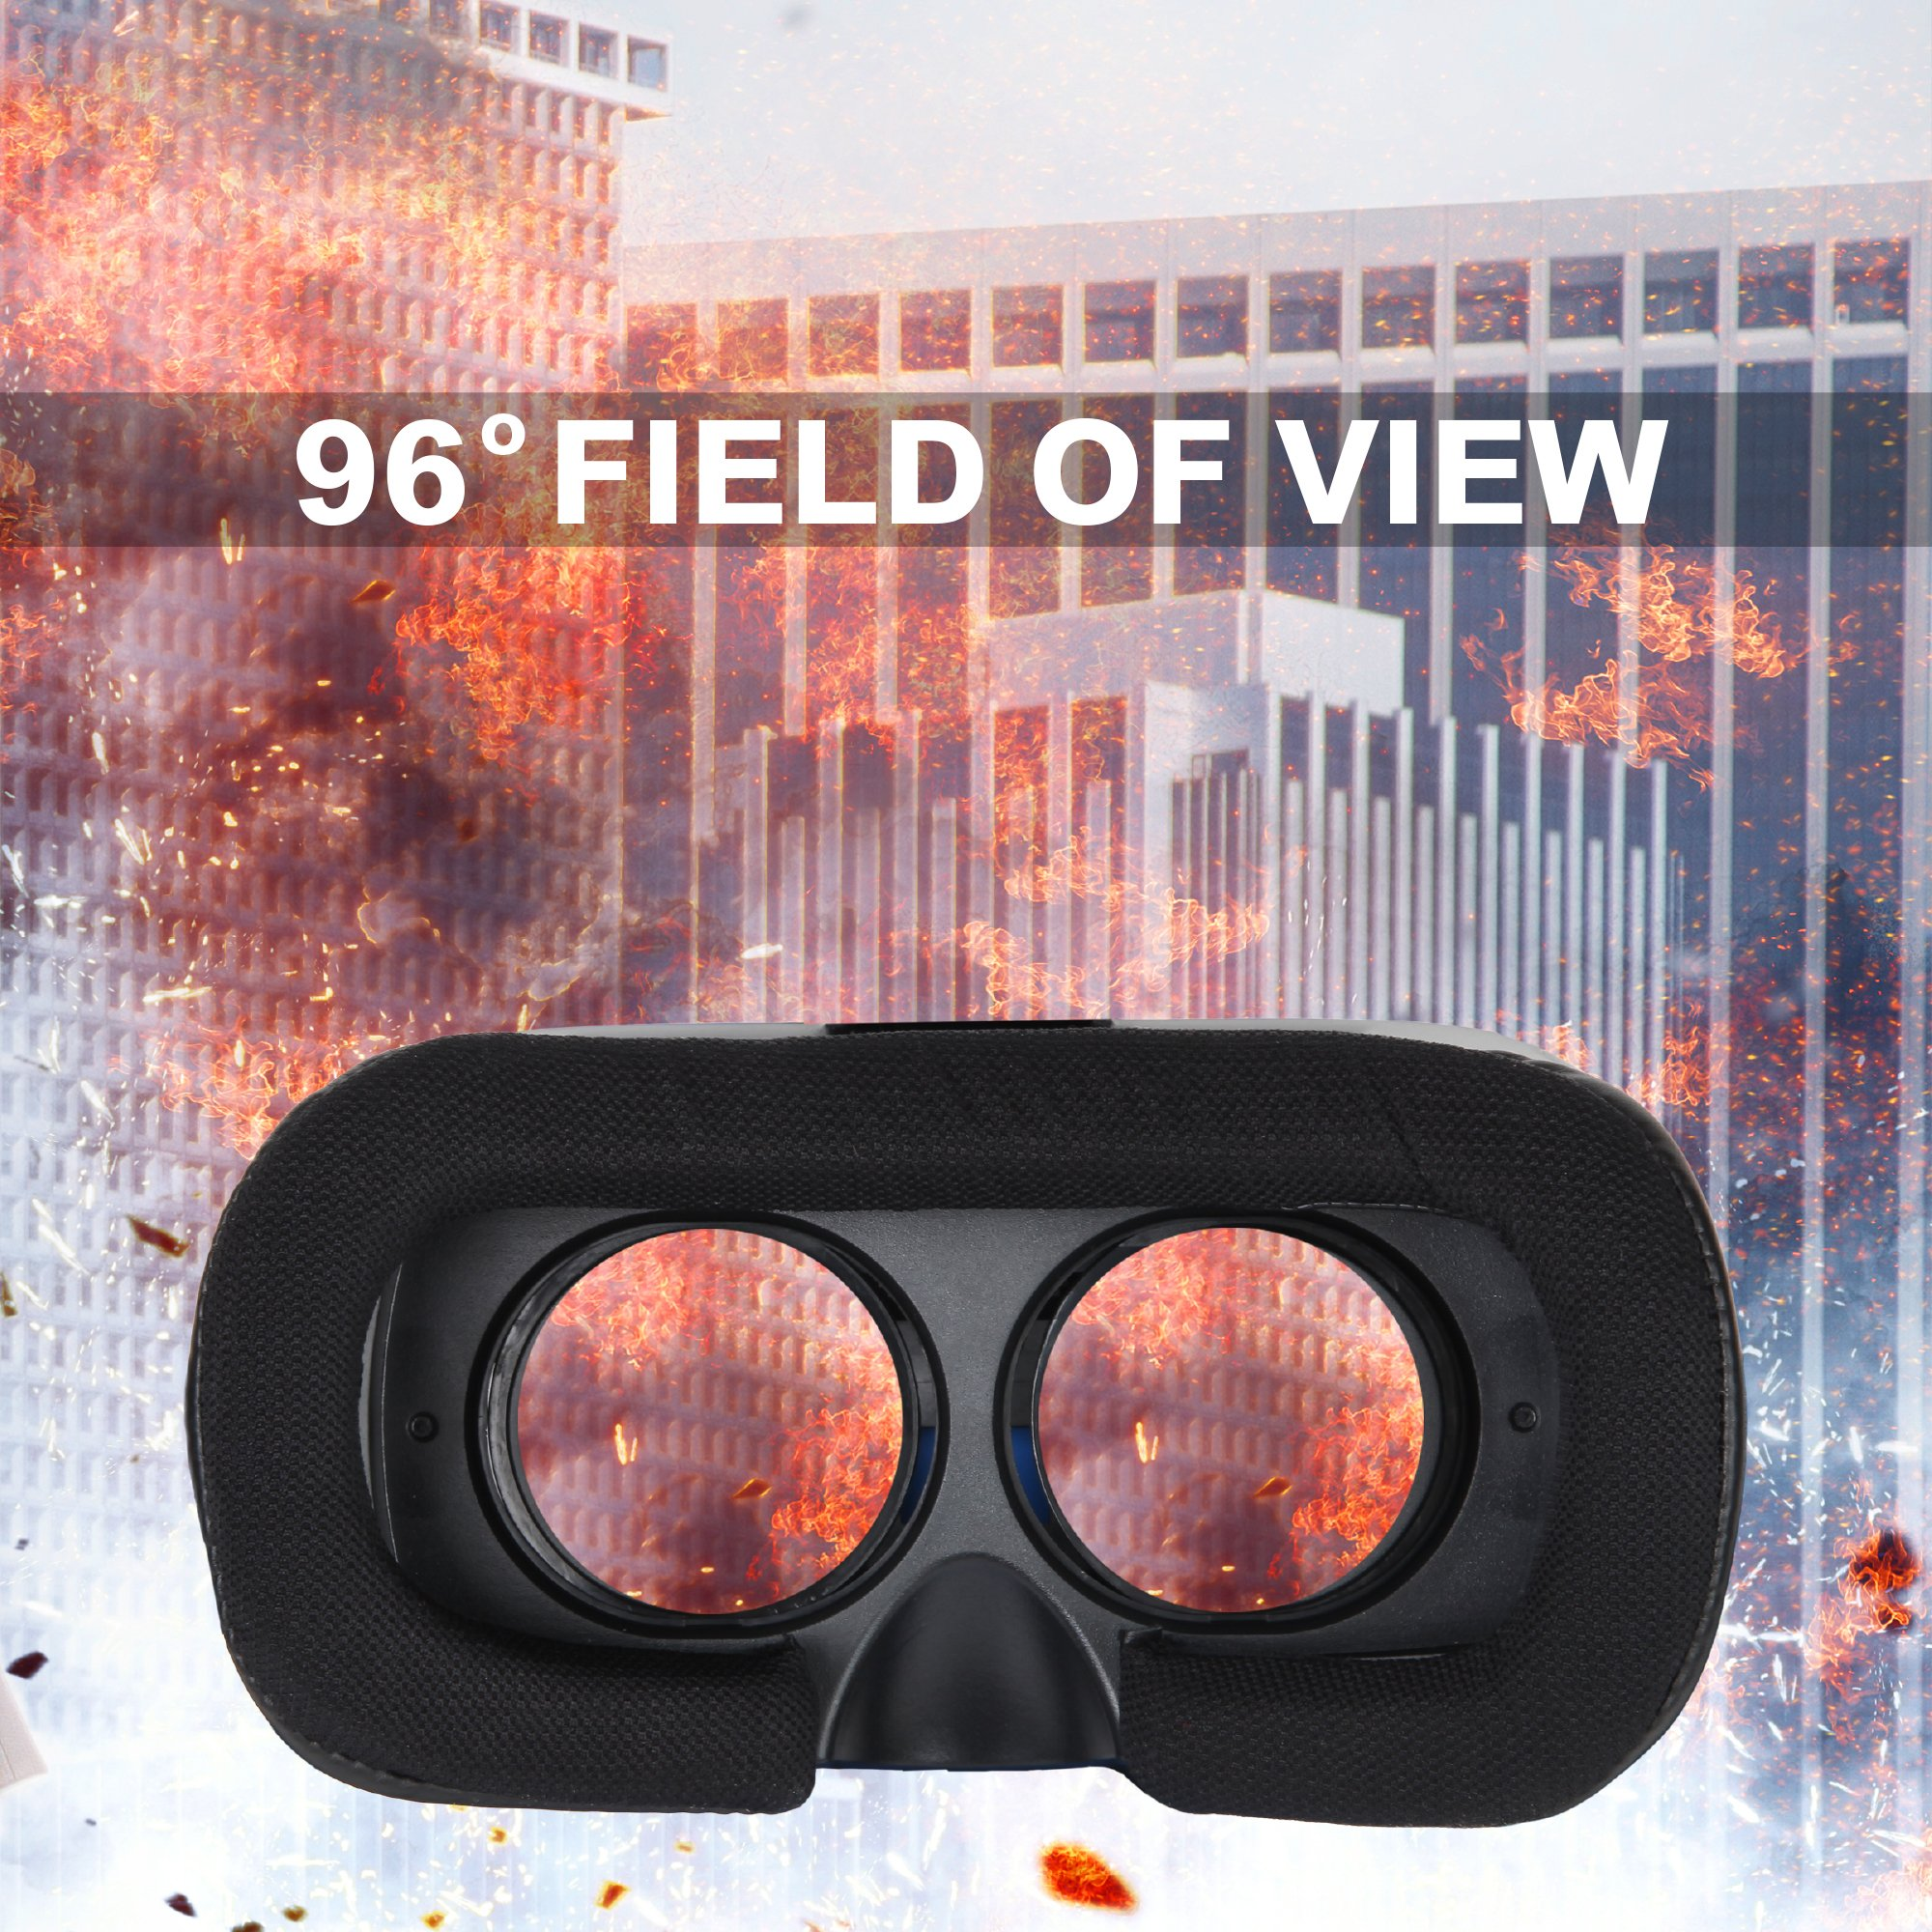 3D VR Headset Technology - Best Virtual Reality Experience For Games & Video - Watch Movies In Breathtaking HD With Your Smartphone Fit Glasses & Helmet - Goggles For Your iPhone & Android Smartphones by Rok Am (Image #6)